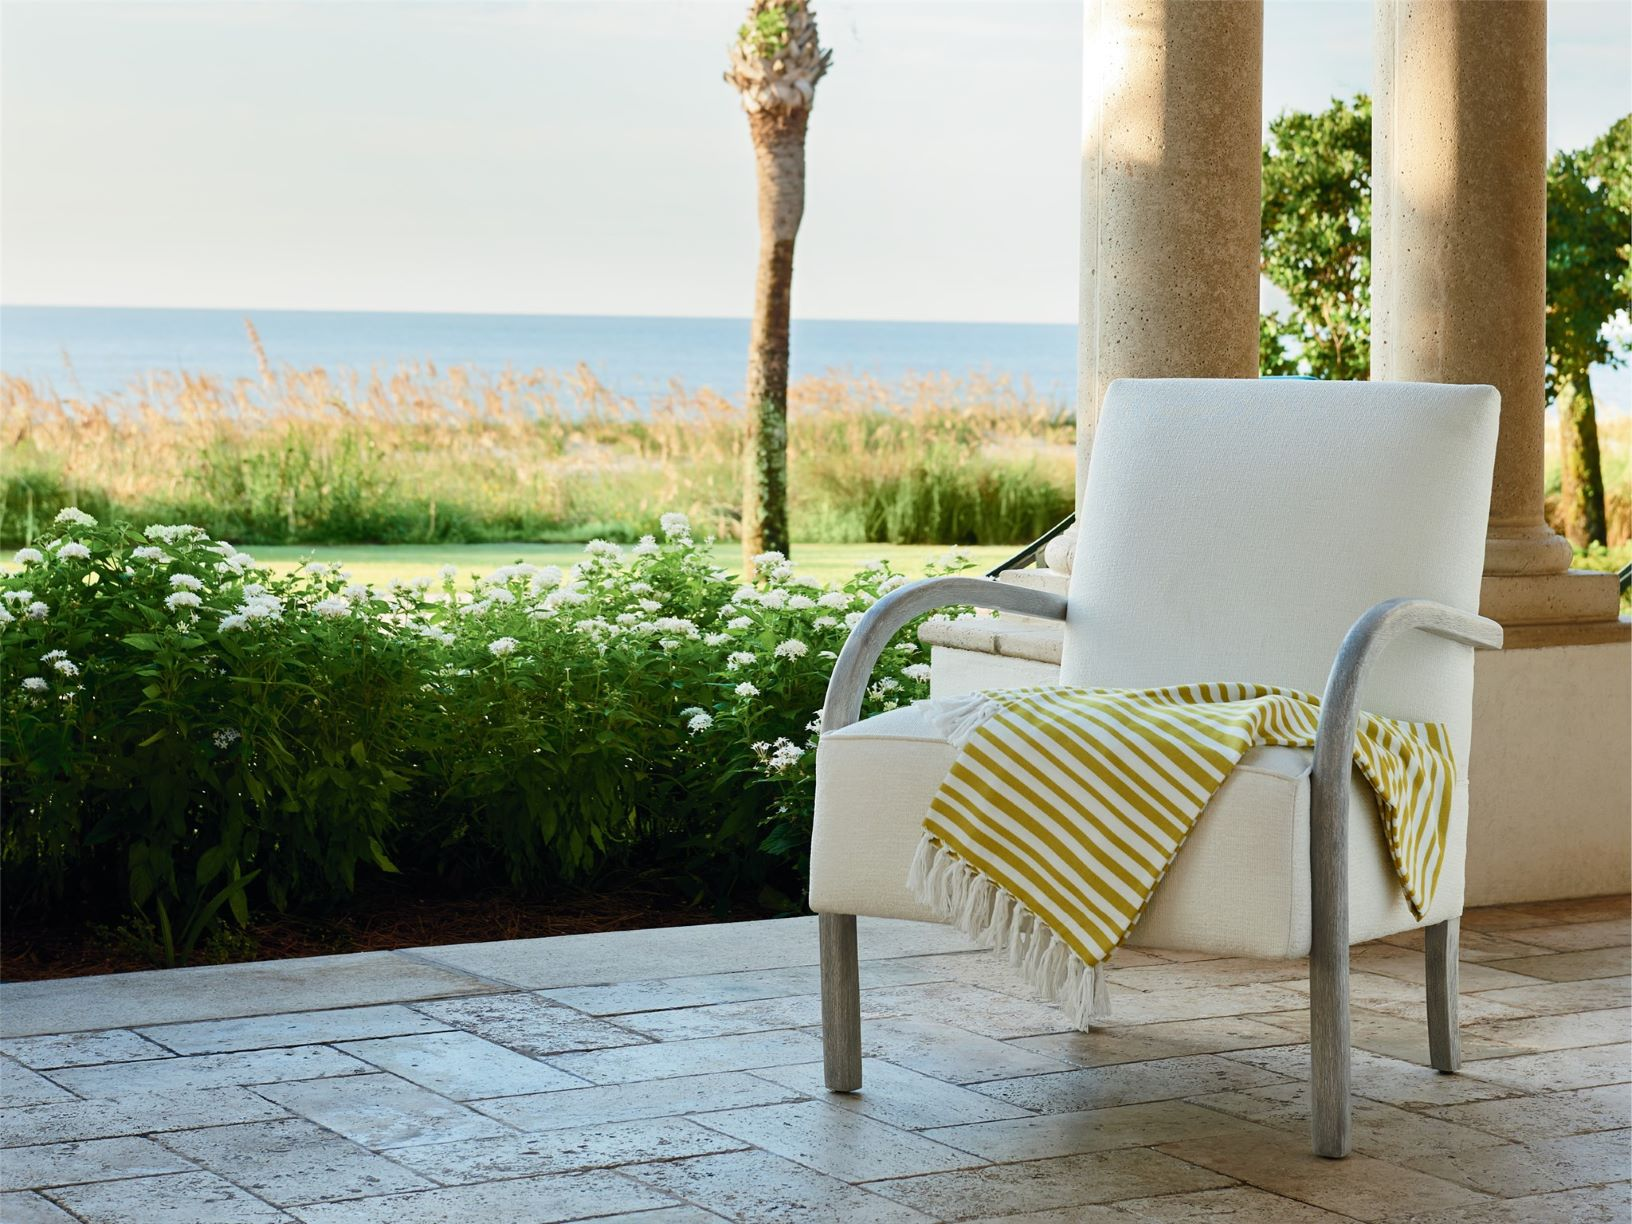 Chair on a porch overlooking the ocean